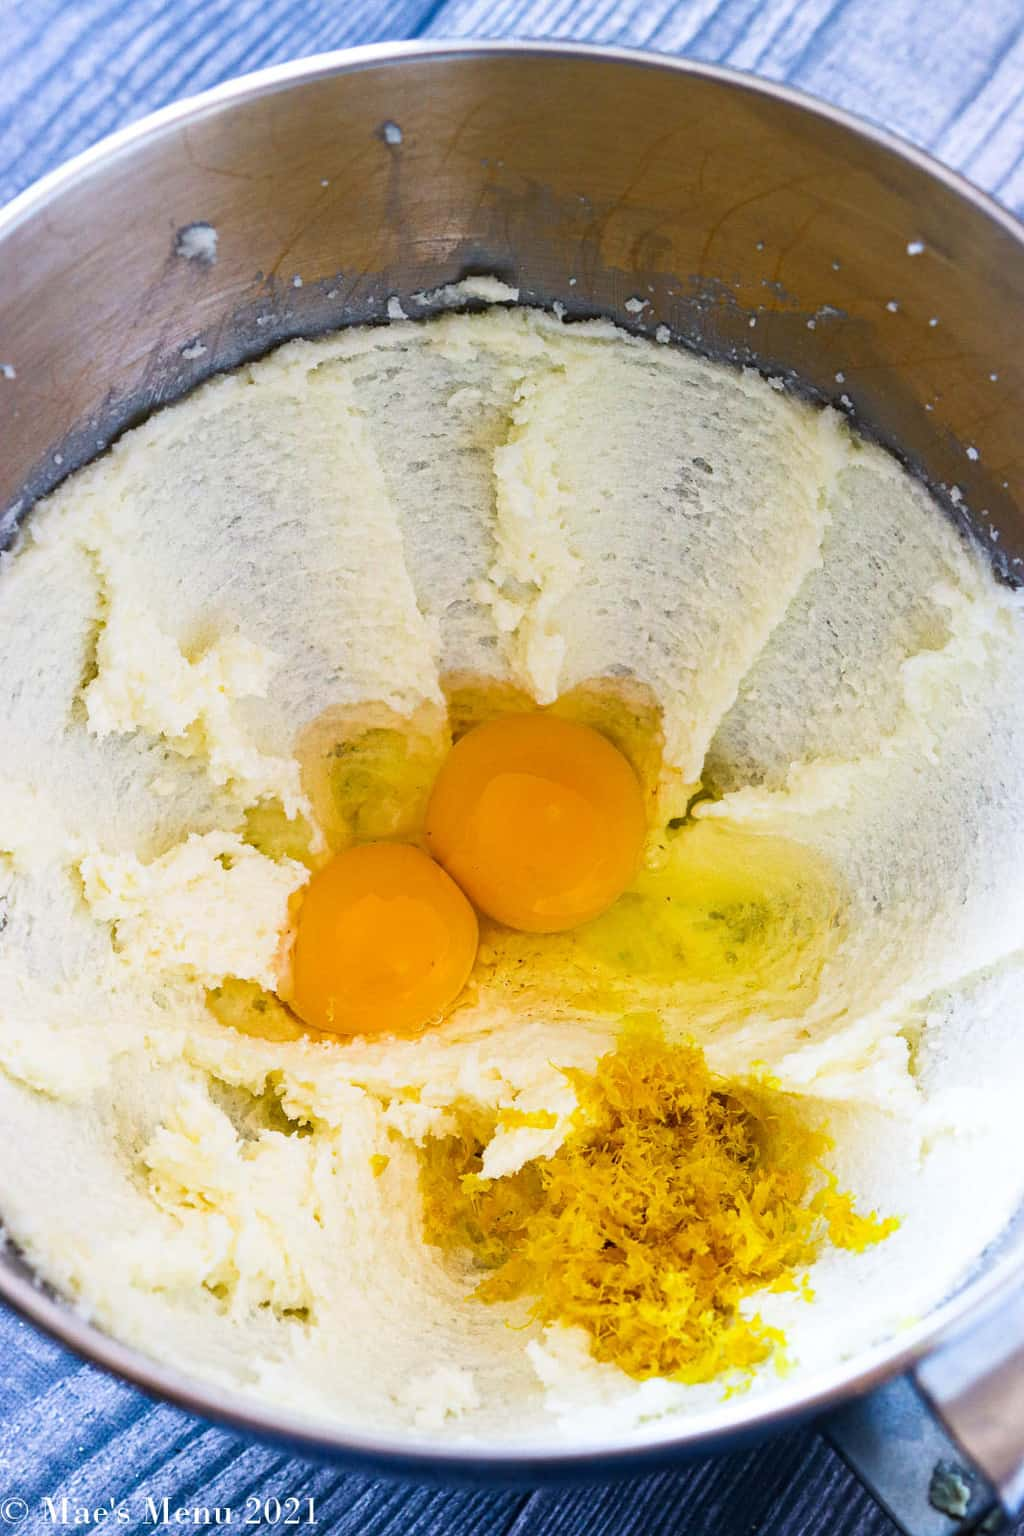 A mizing bowl of creamed butter and sugar with an egg, egg yolk, and lemon zest